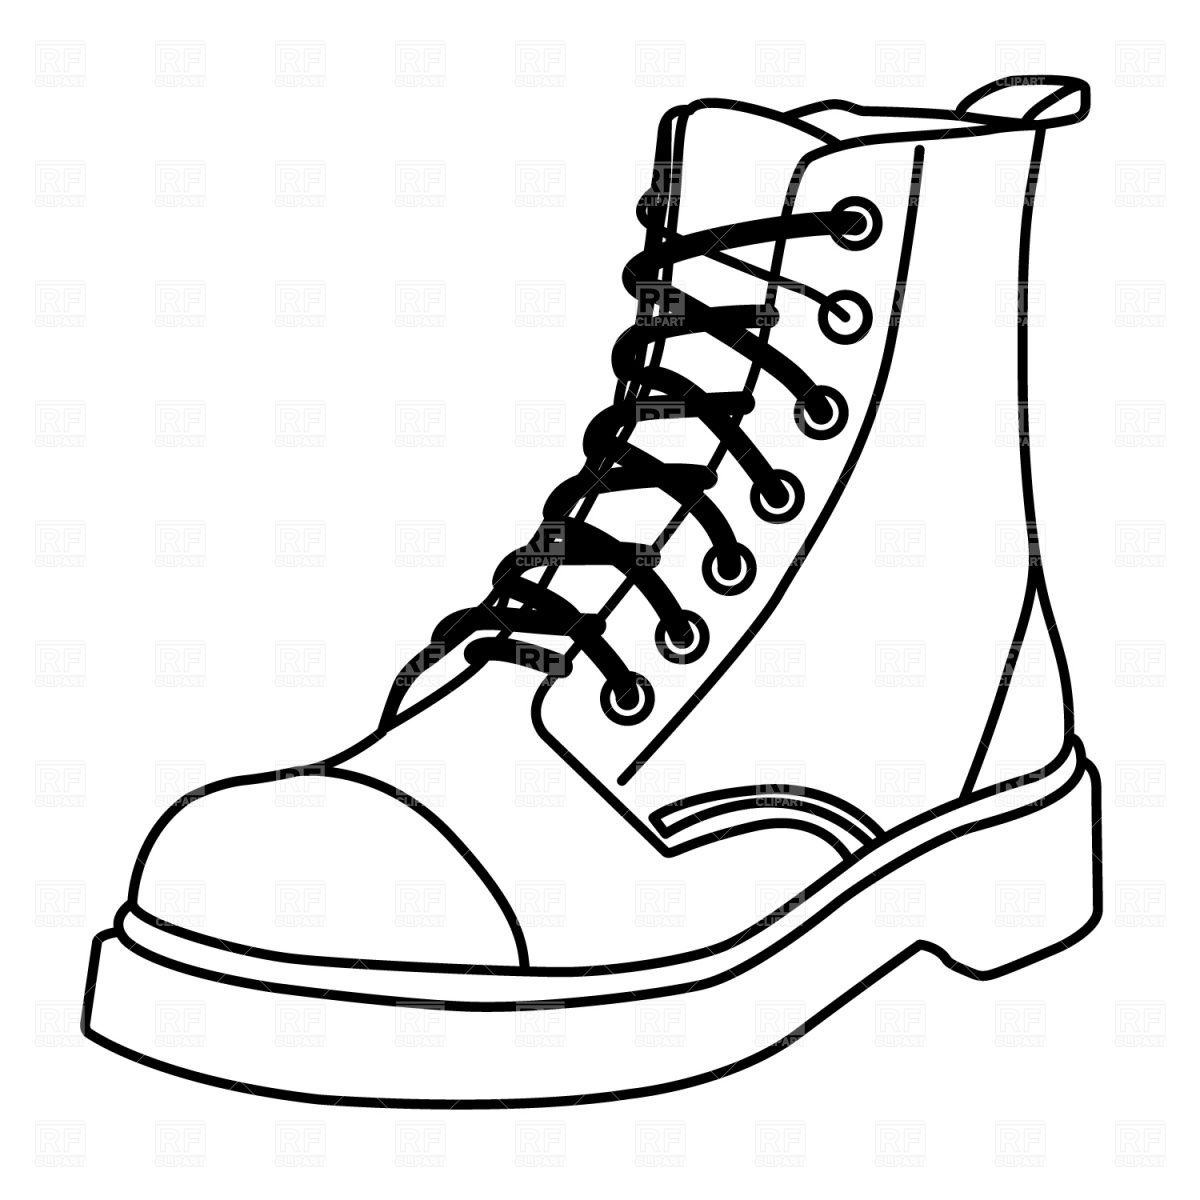 how to draw a simple shoe shoe drawing jordans at paintingvalleycom explore to how shoe simple draw a